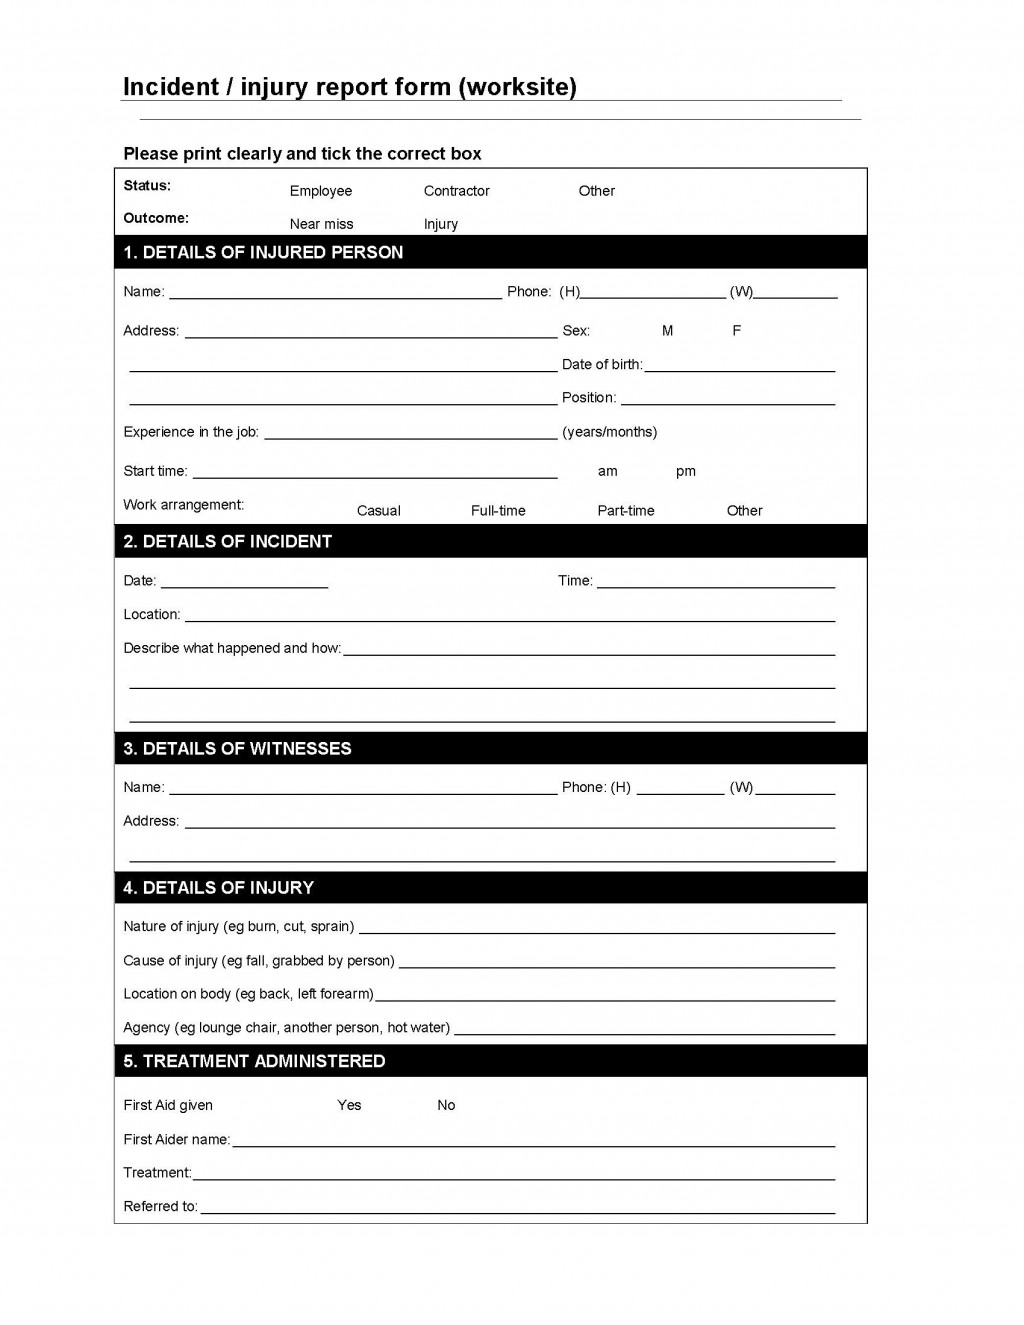 003 Marvelou Workplace Injury Report Form Template Ontario Sample Large